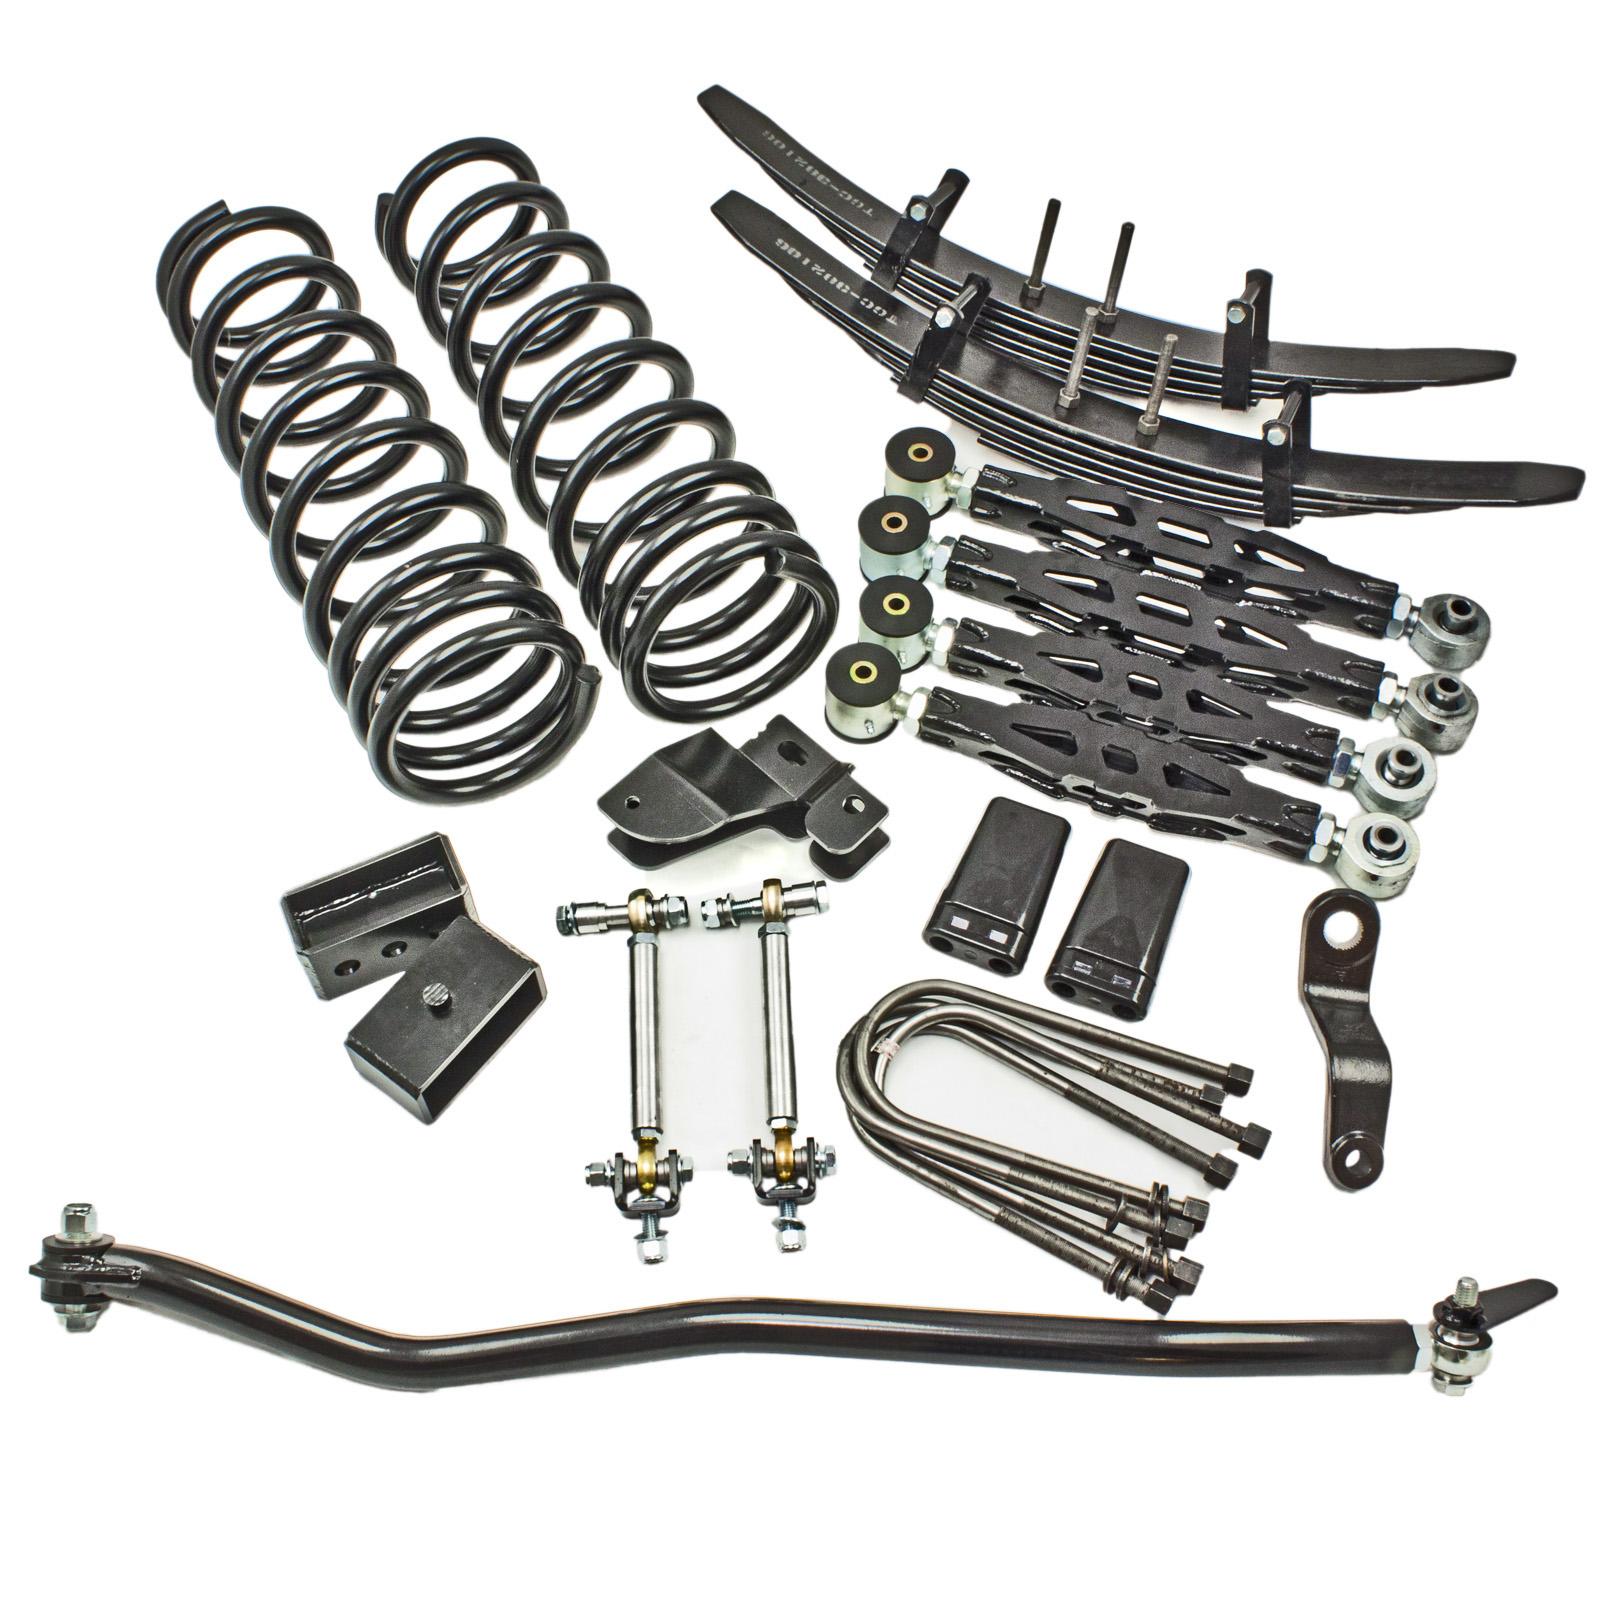 Dodge Lift Kit For 2010 Dodge Ram 2500 Truck Lift Kits